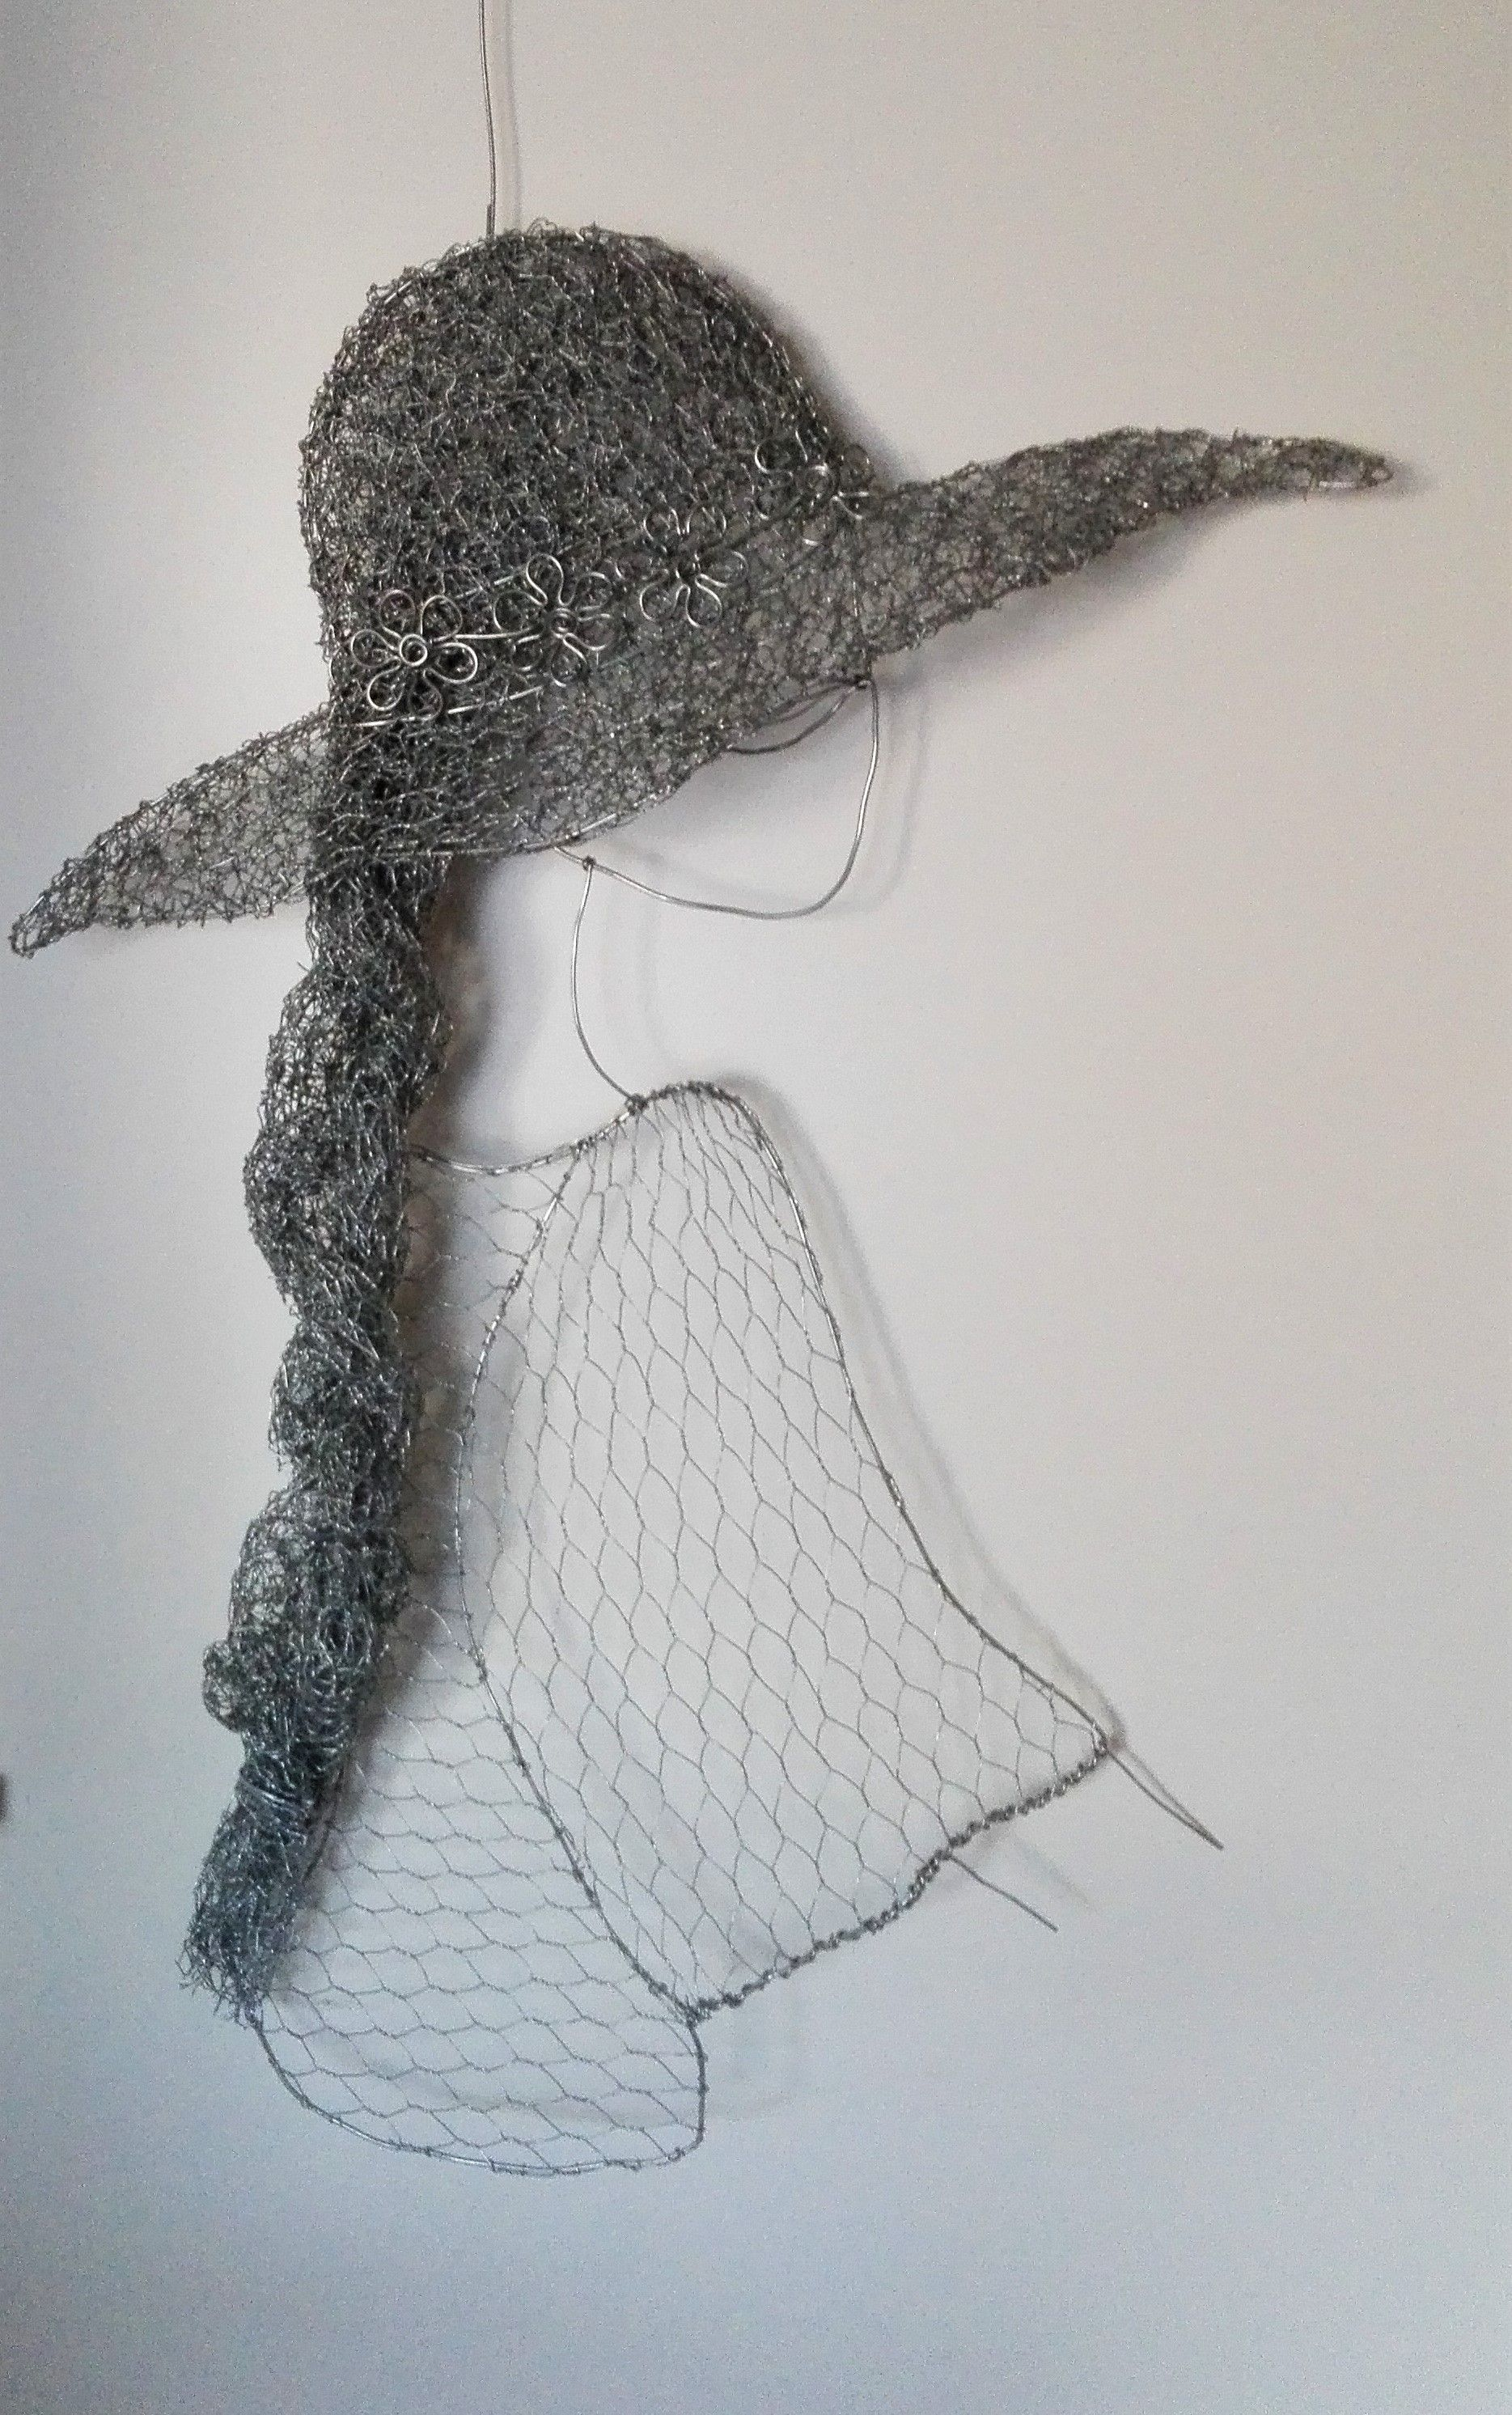 Chicken wire sculpture - Lady with a hat and long plait. | sculpture ...